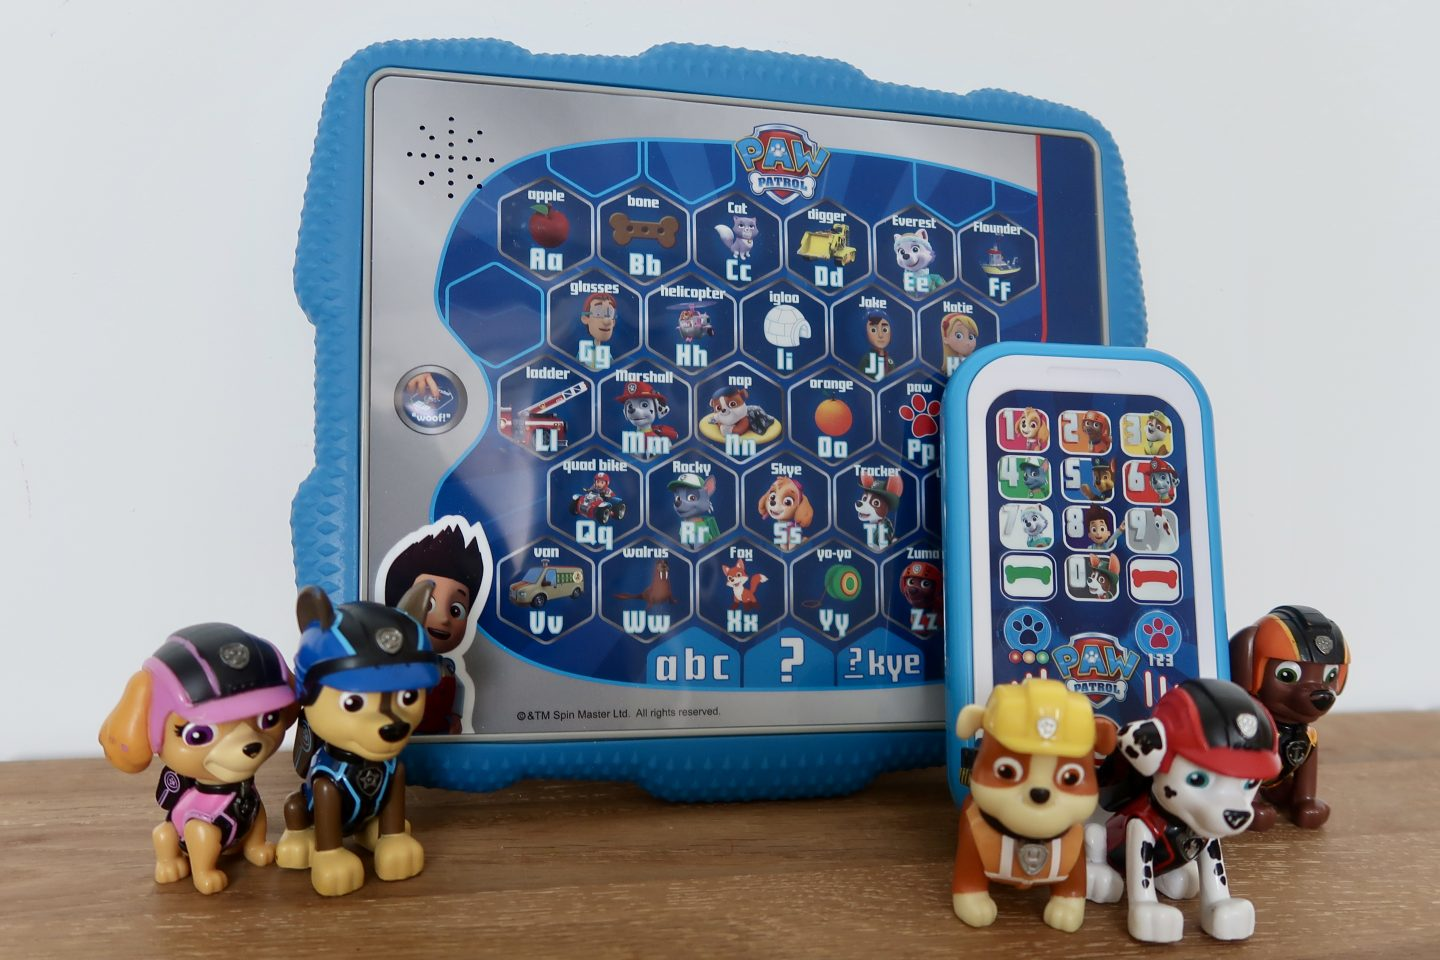 Paw Patrol Smart Phone And Ryder's Alphabet Tablet with some of the pups